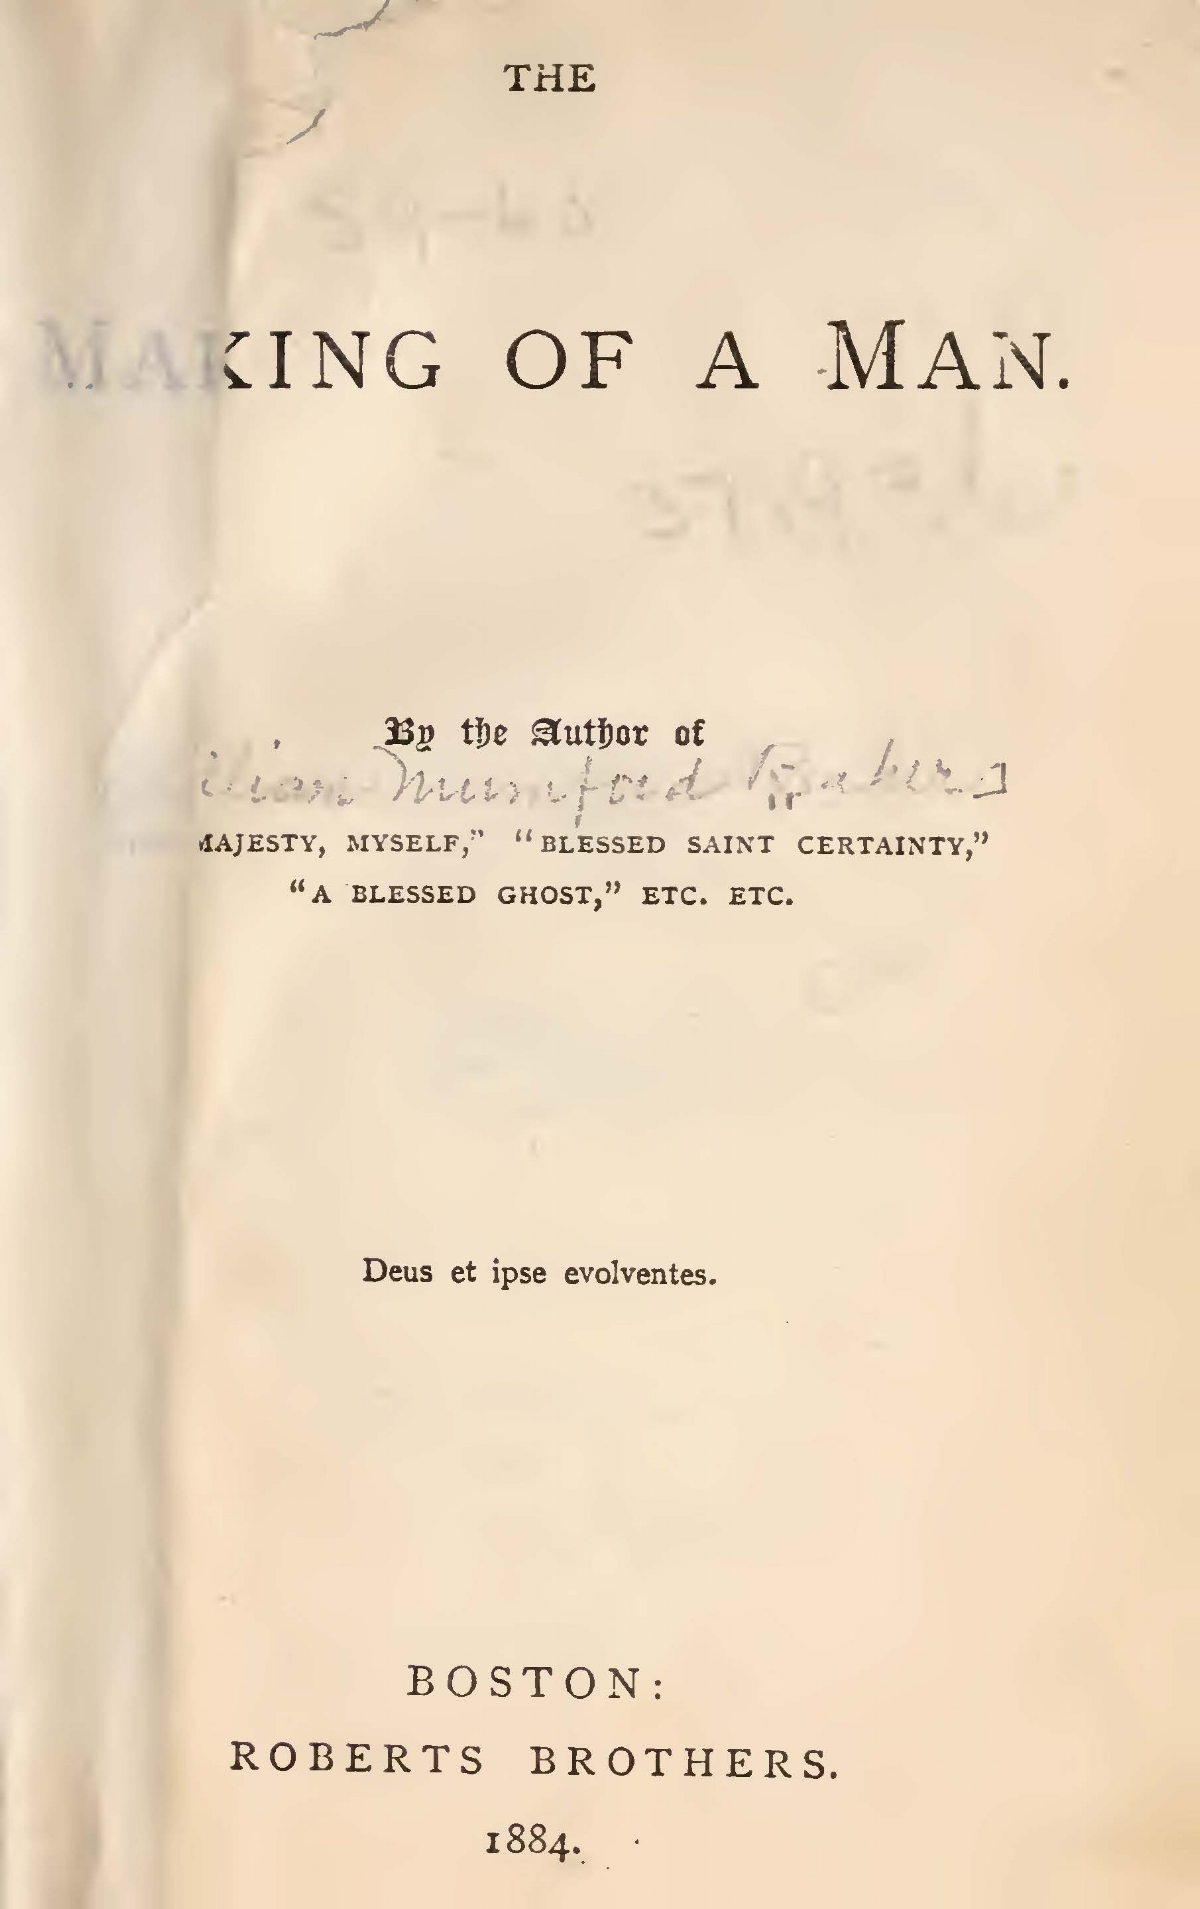 Baker, William Munford, The Making of a Man Title Page.jpg